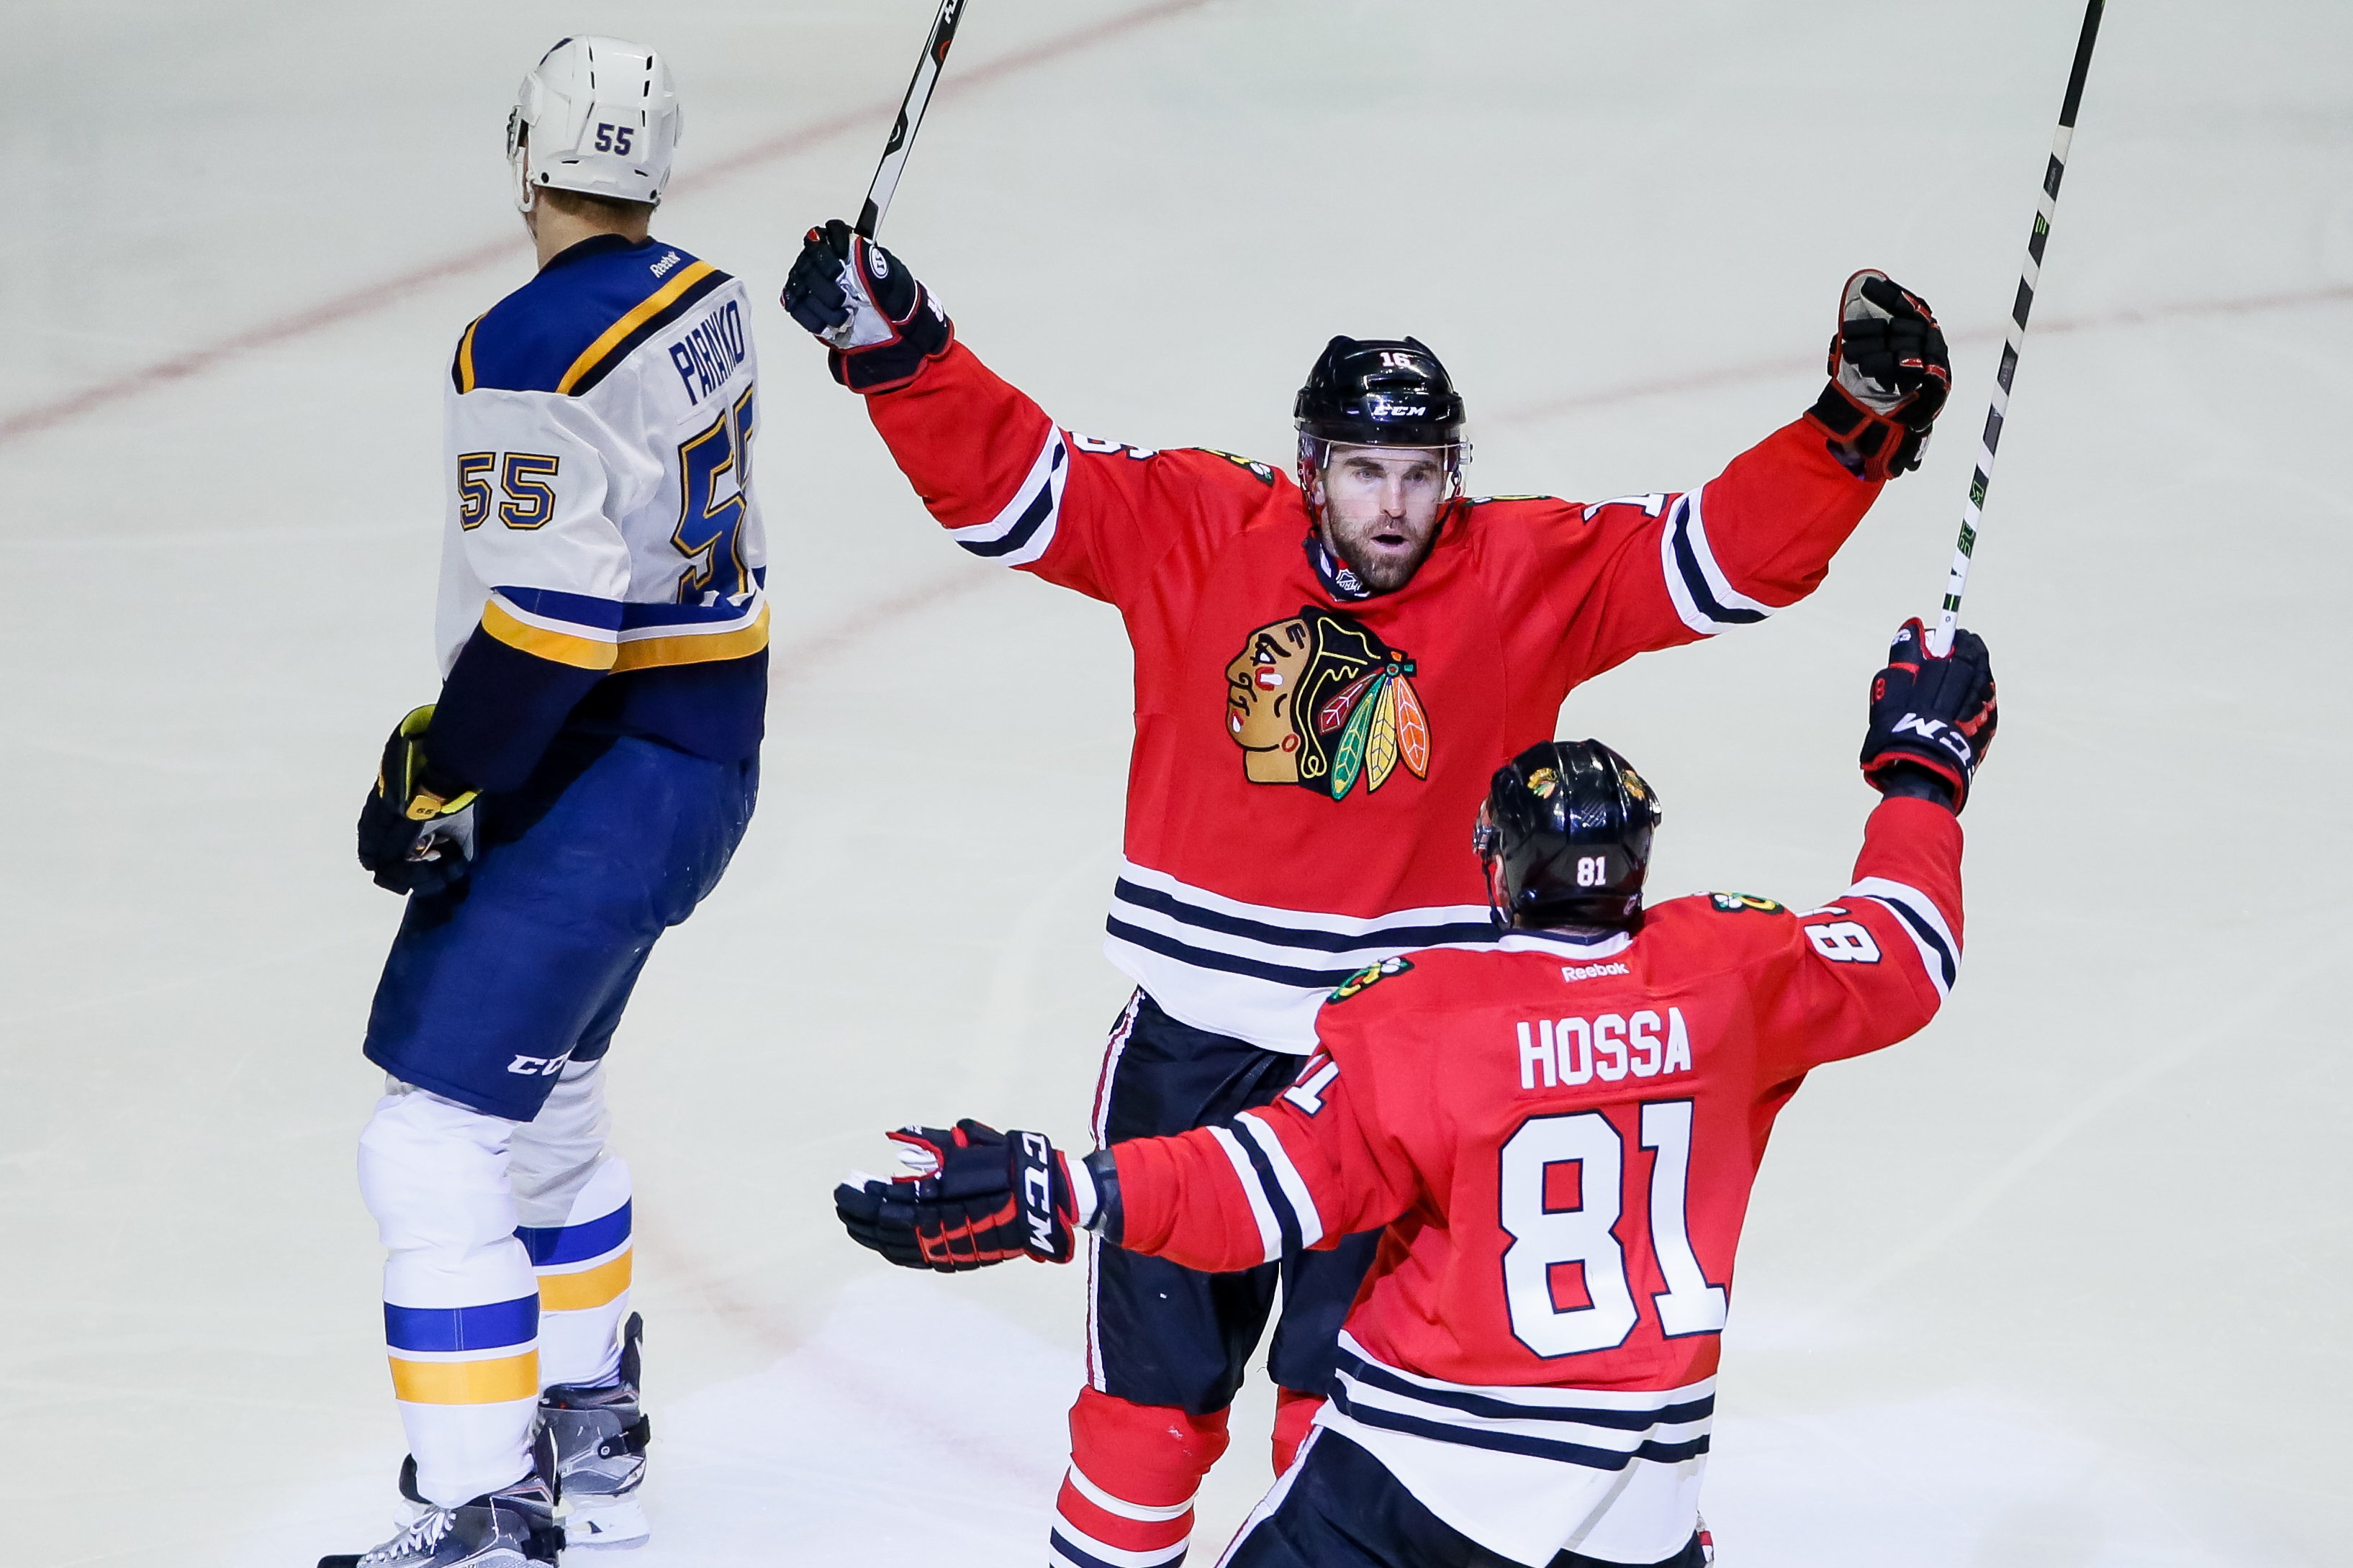 523570854-st-louis-blues-v-chicago-blackhawks-game-six.jpg